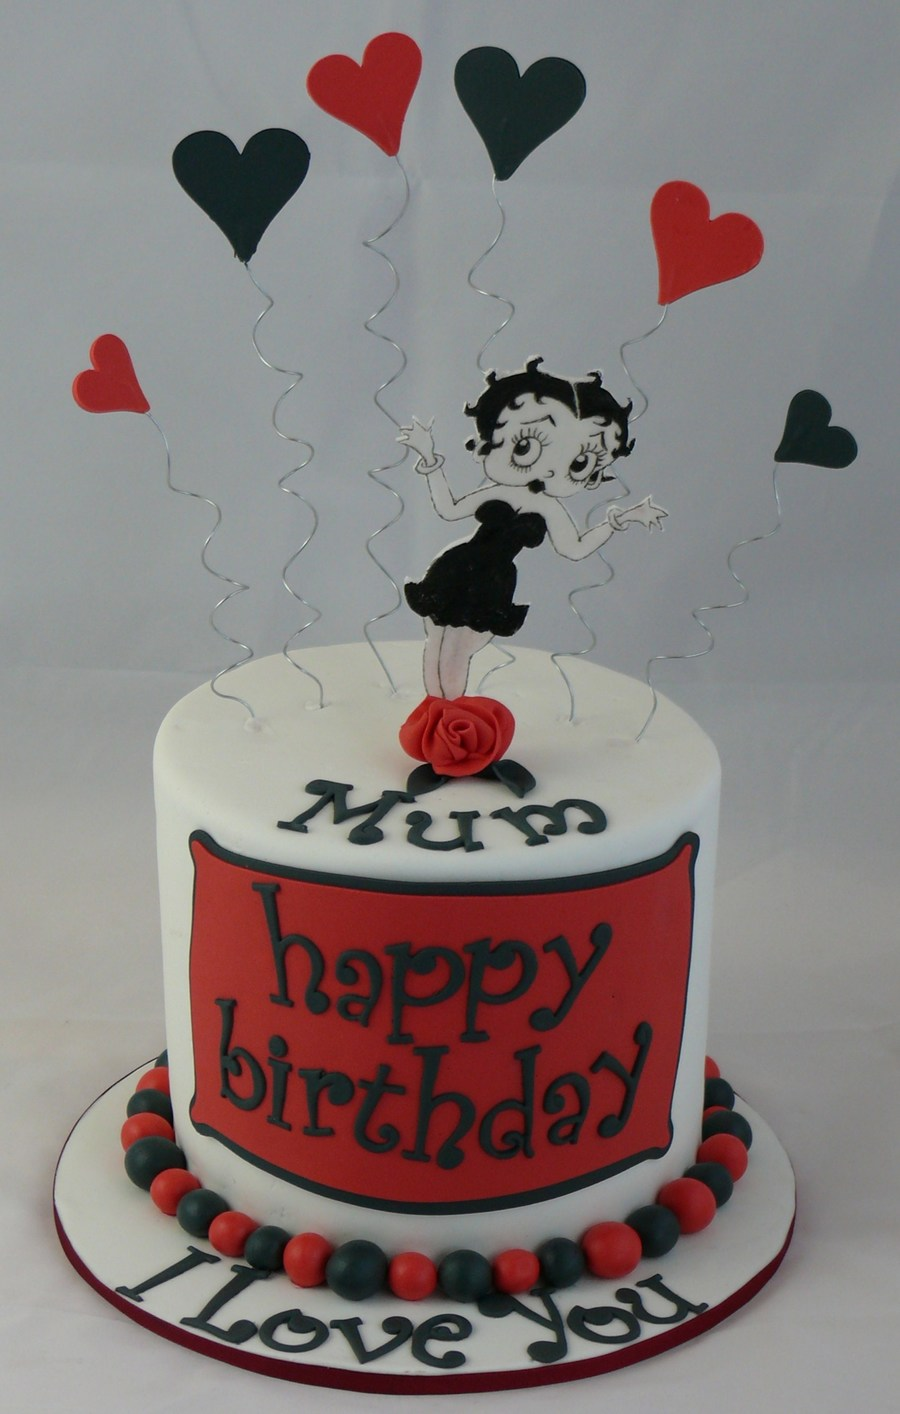 Terrific Betty Boop Birthday Cake Cakecentral Com Birthday Cards Printable Opercafe Filternl